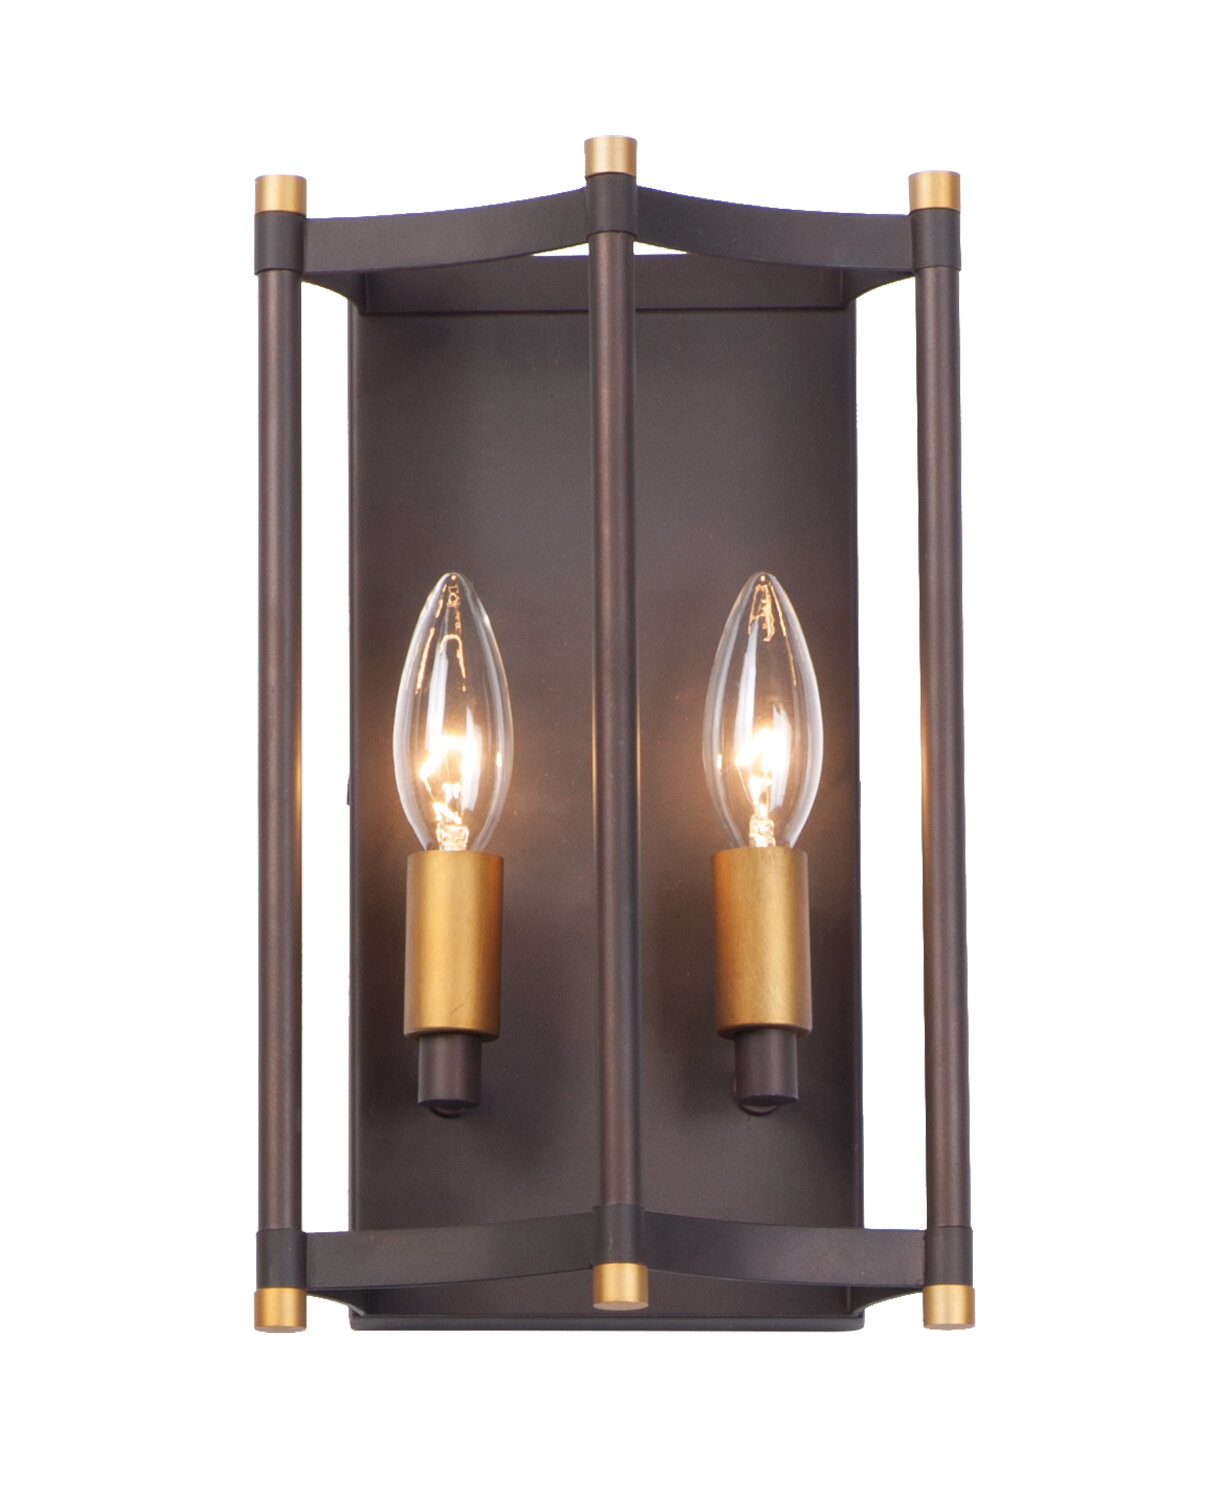 Antique Brass Flush Mount Wall Sconces You Ll Love In 2021 Wayfair